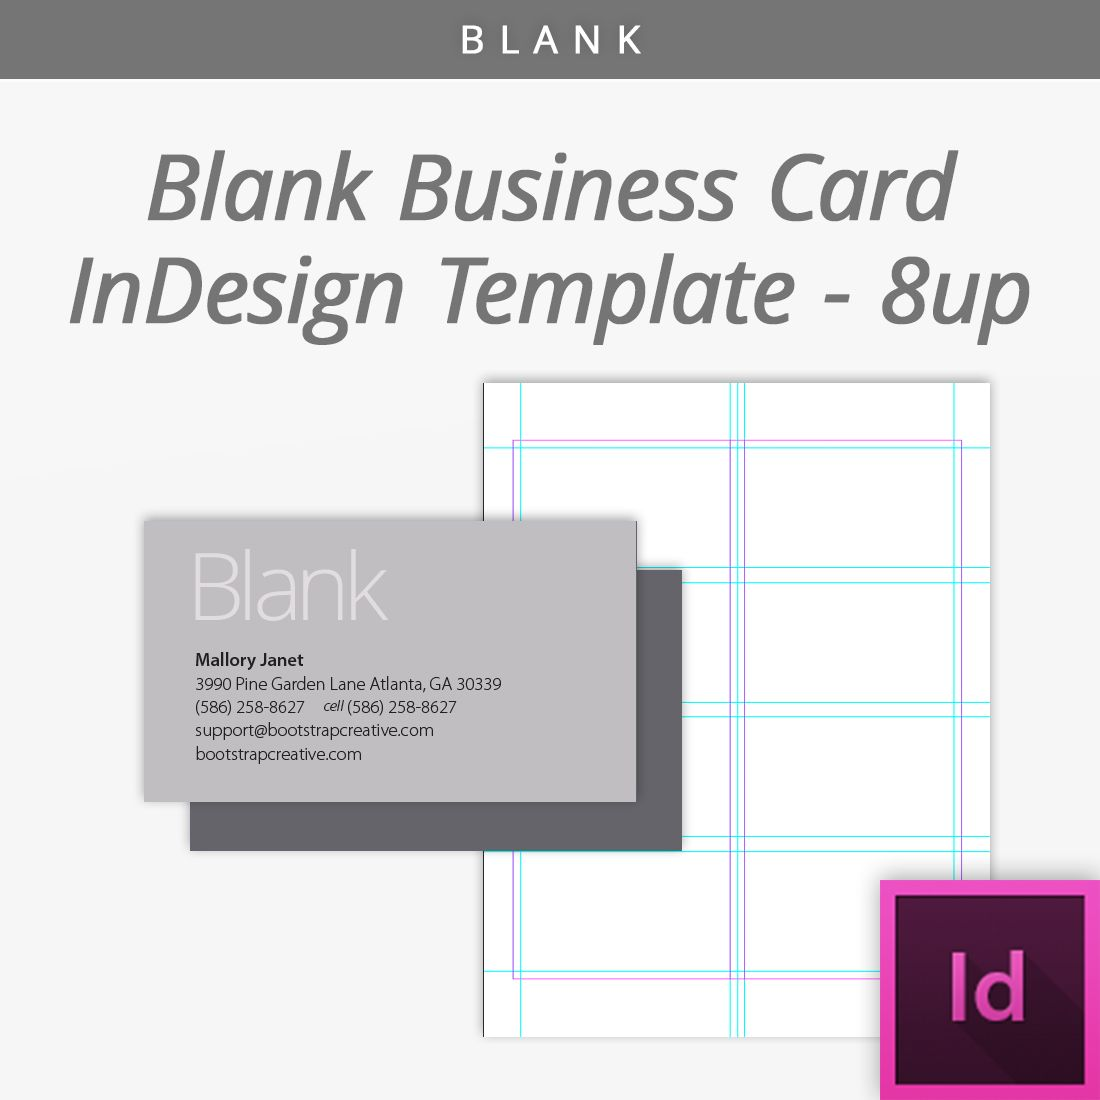 Blank indesign business card template 8 up free download blank indesign business card template 8 up free download designtemplate cheaphphosting Gallery